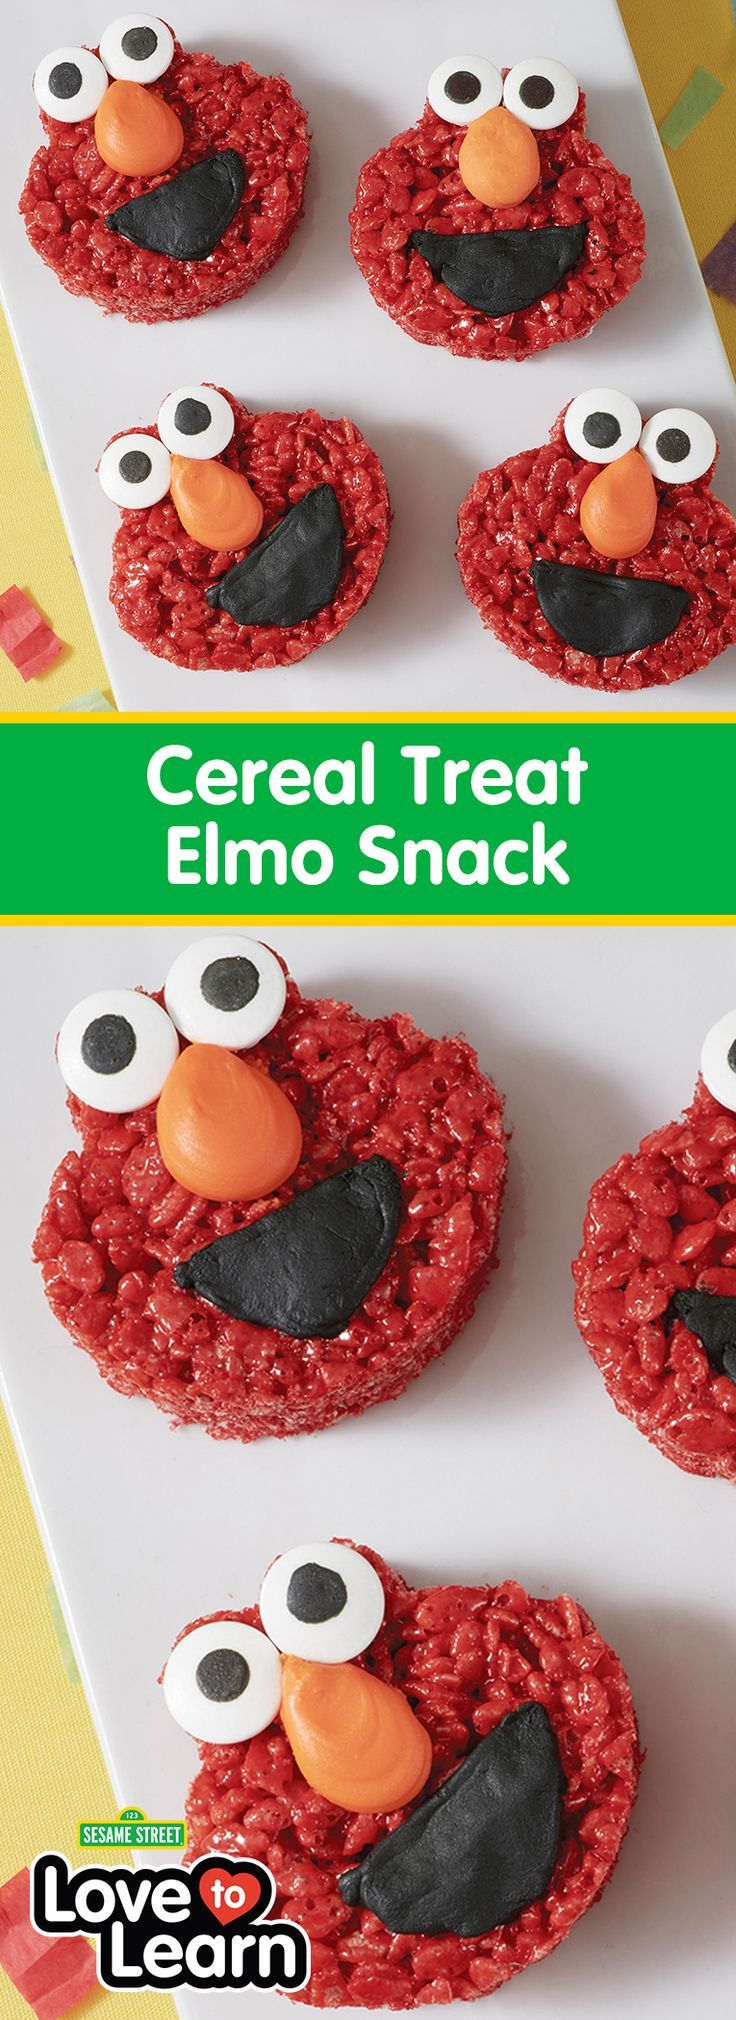 Cereal Treat Elmo Snack - Kids of all ages love cereal treats, and these fun Cereal Treat Elmo Snacks are great for Sesame Street fans of all ages. Simple and easy to make, these cereal snacks make fun alternatives to sweeter treats and are very easy to create using the Sesame Street Cookie Cutter Set. Use your favorite cereal treat recipe and watch kids smile with delight when they see these cute Cereal Treat Elmo Snacks!